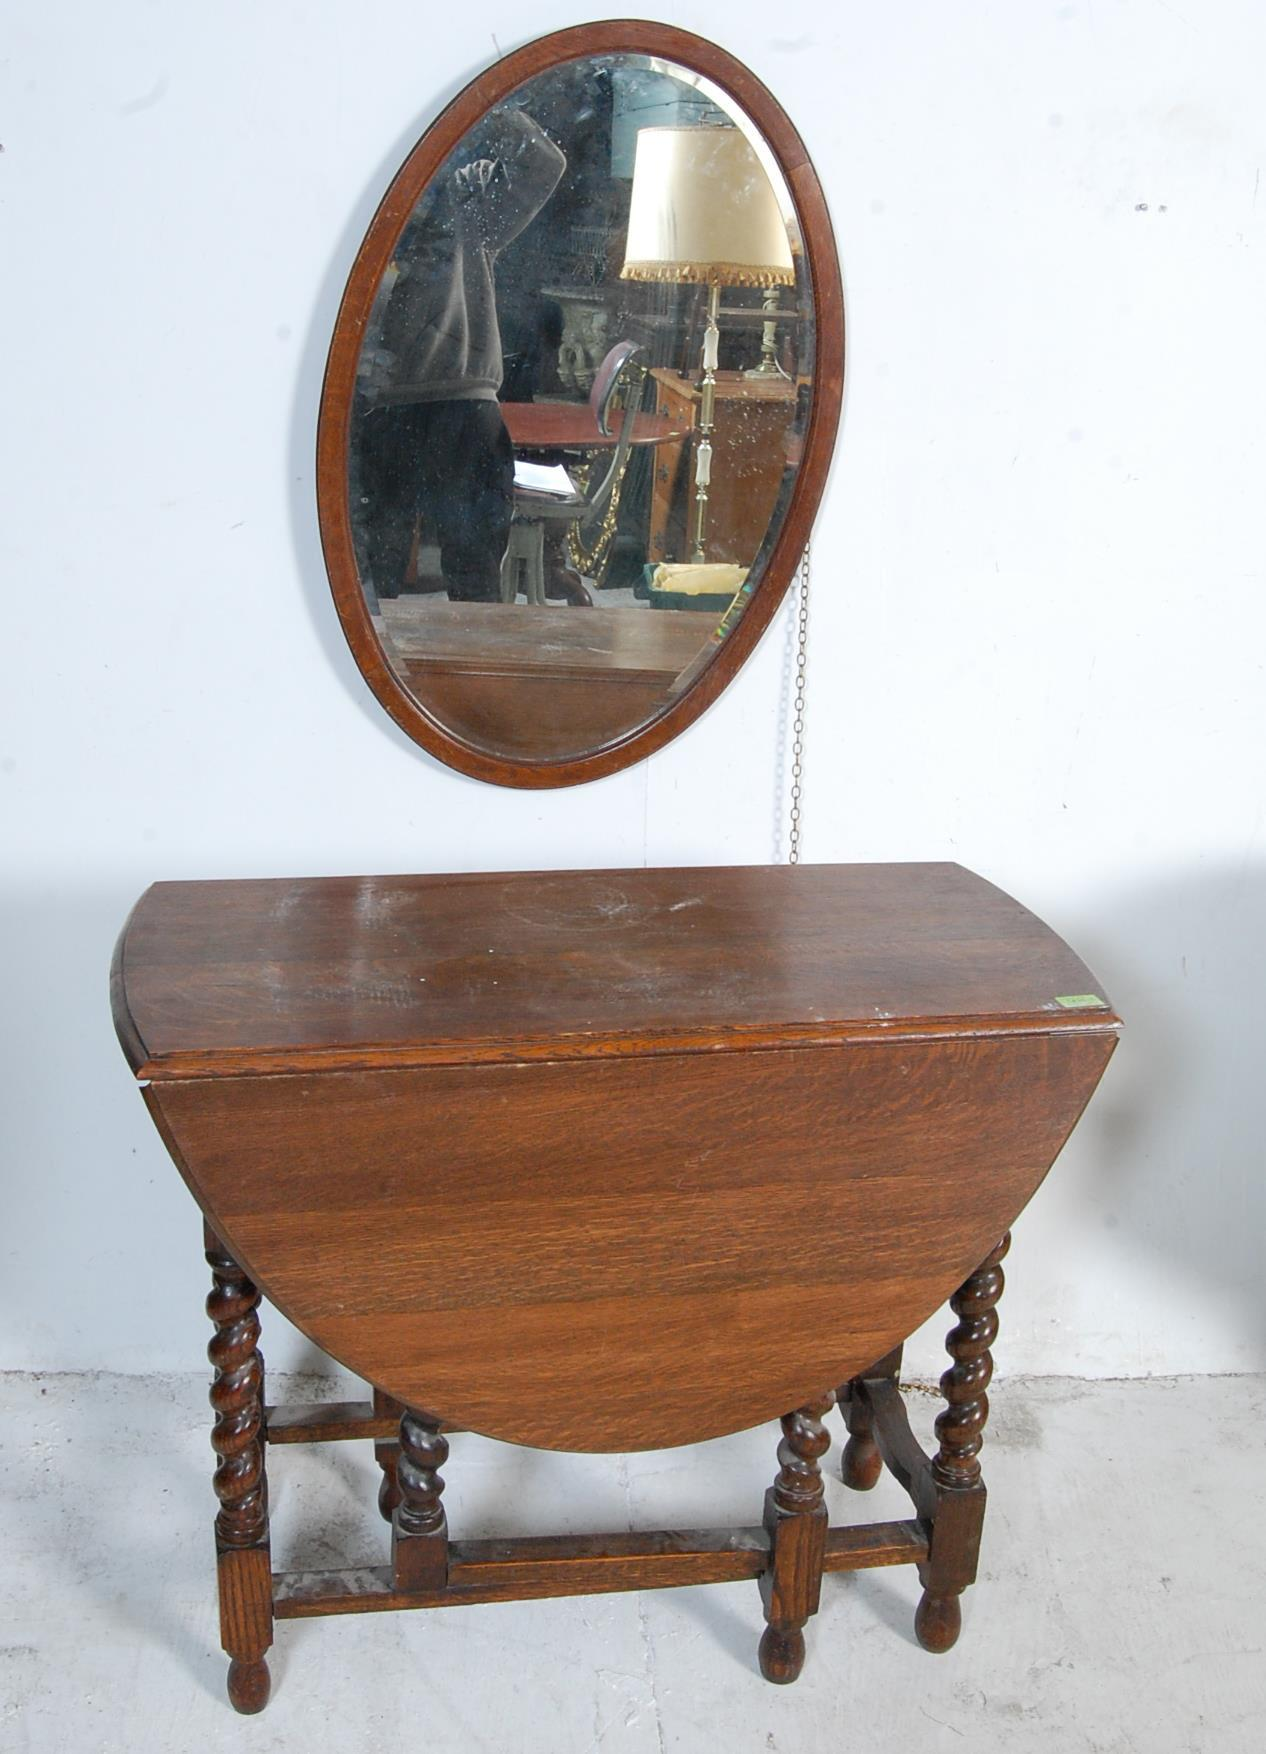 1940'S OAK DROP LEAF DINING TABLE AND OVAL WALL MIRROR